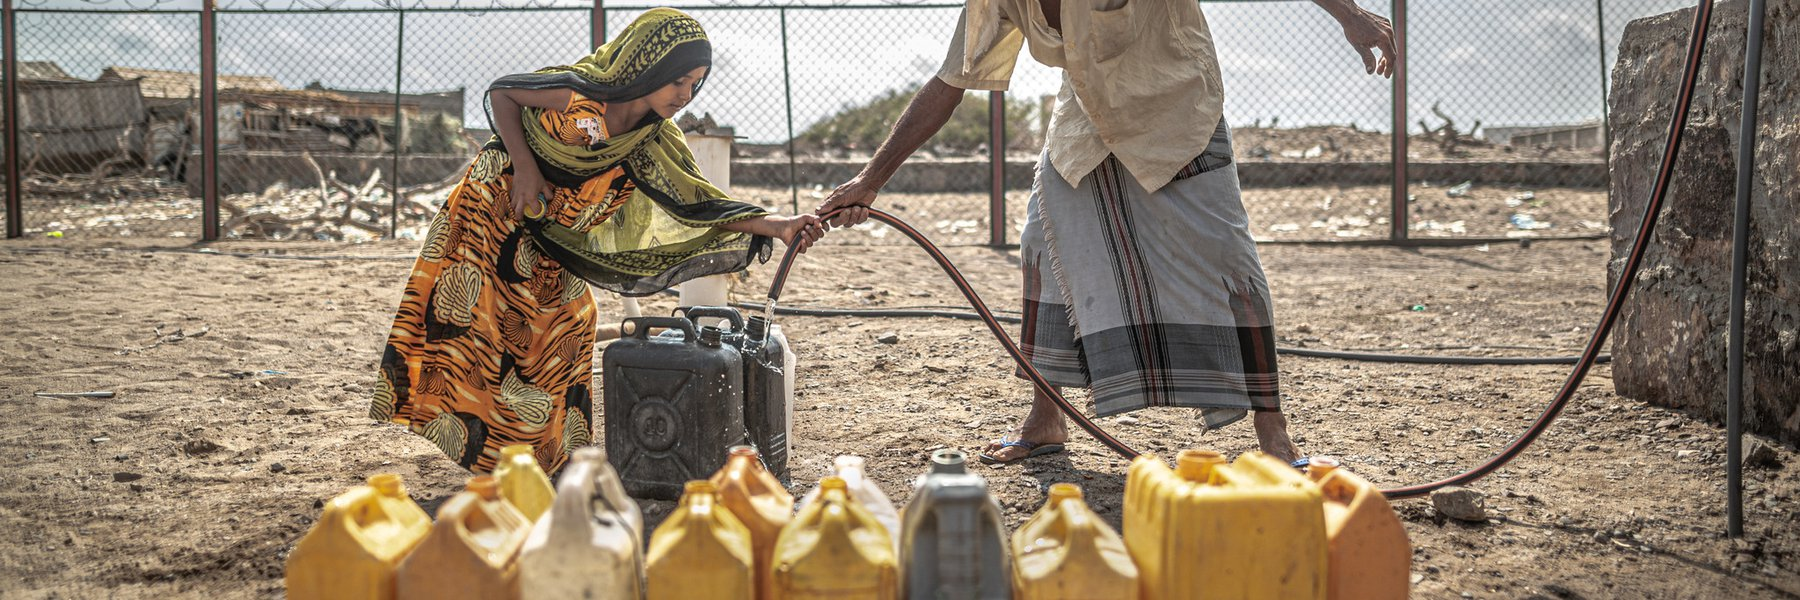 Naaser Mohamed Fakih and his granddaughter fill water containers with water